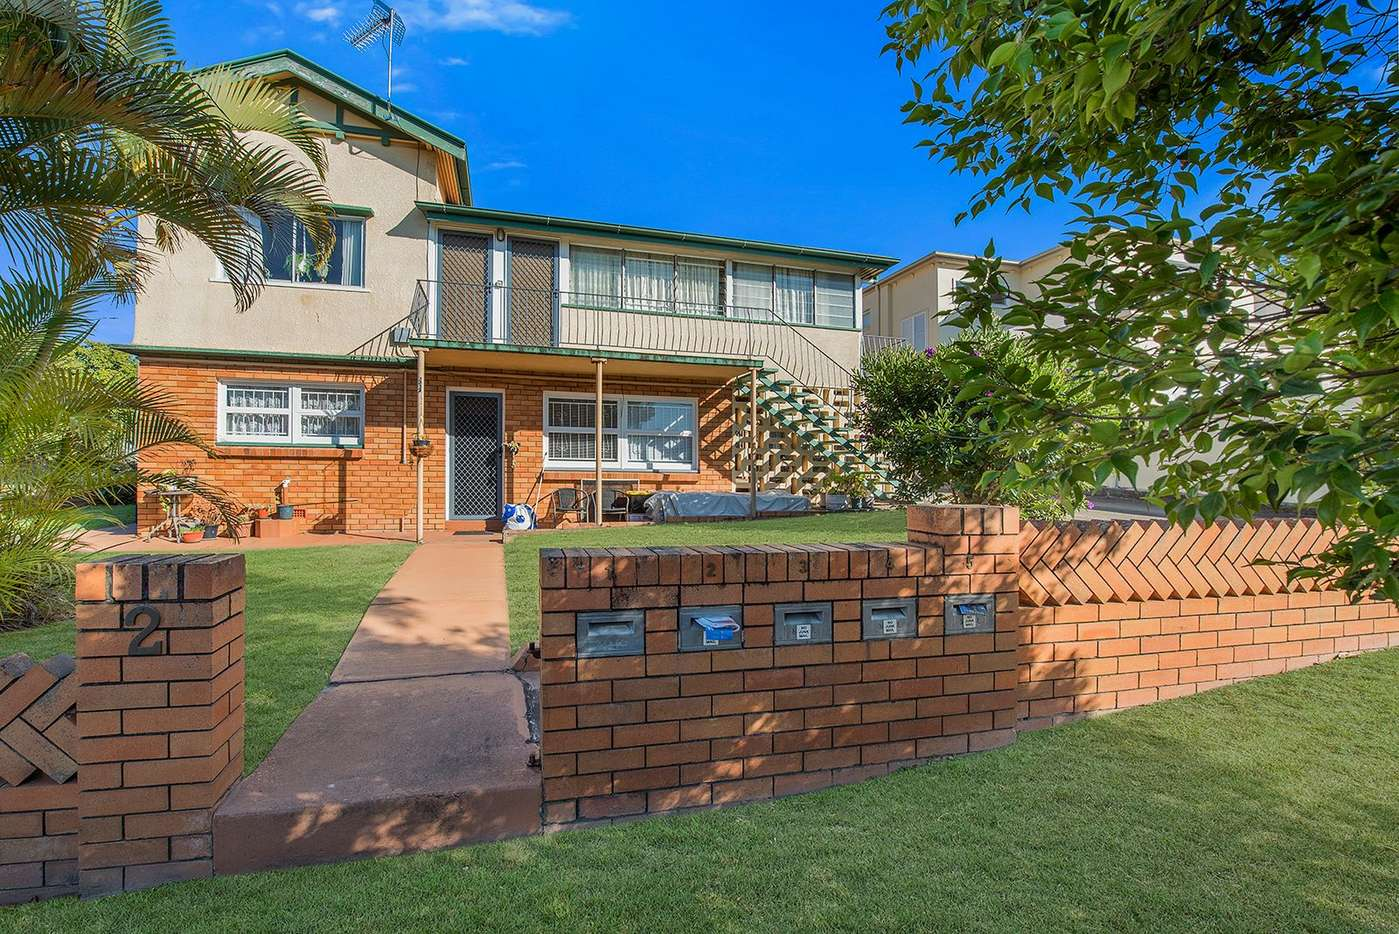 Main view of Homely unit listing, 2/2 Groom Street, Gordon Park, QLD 4031